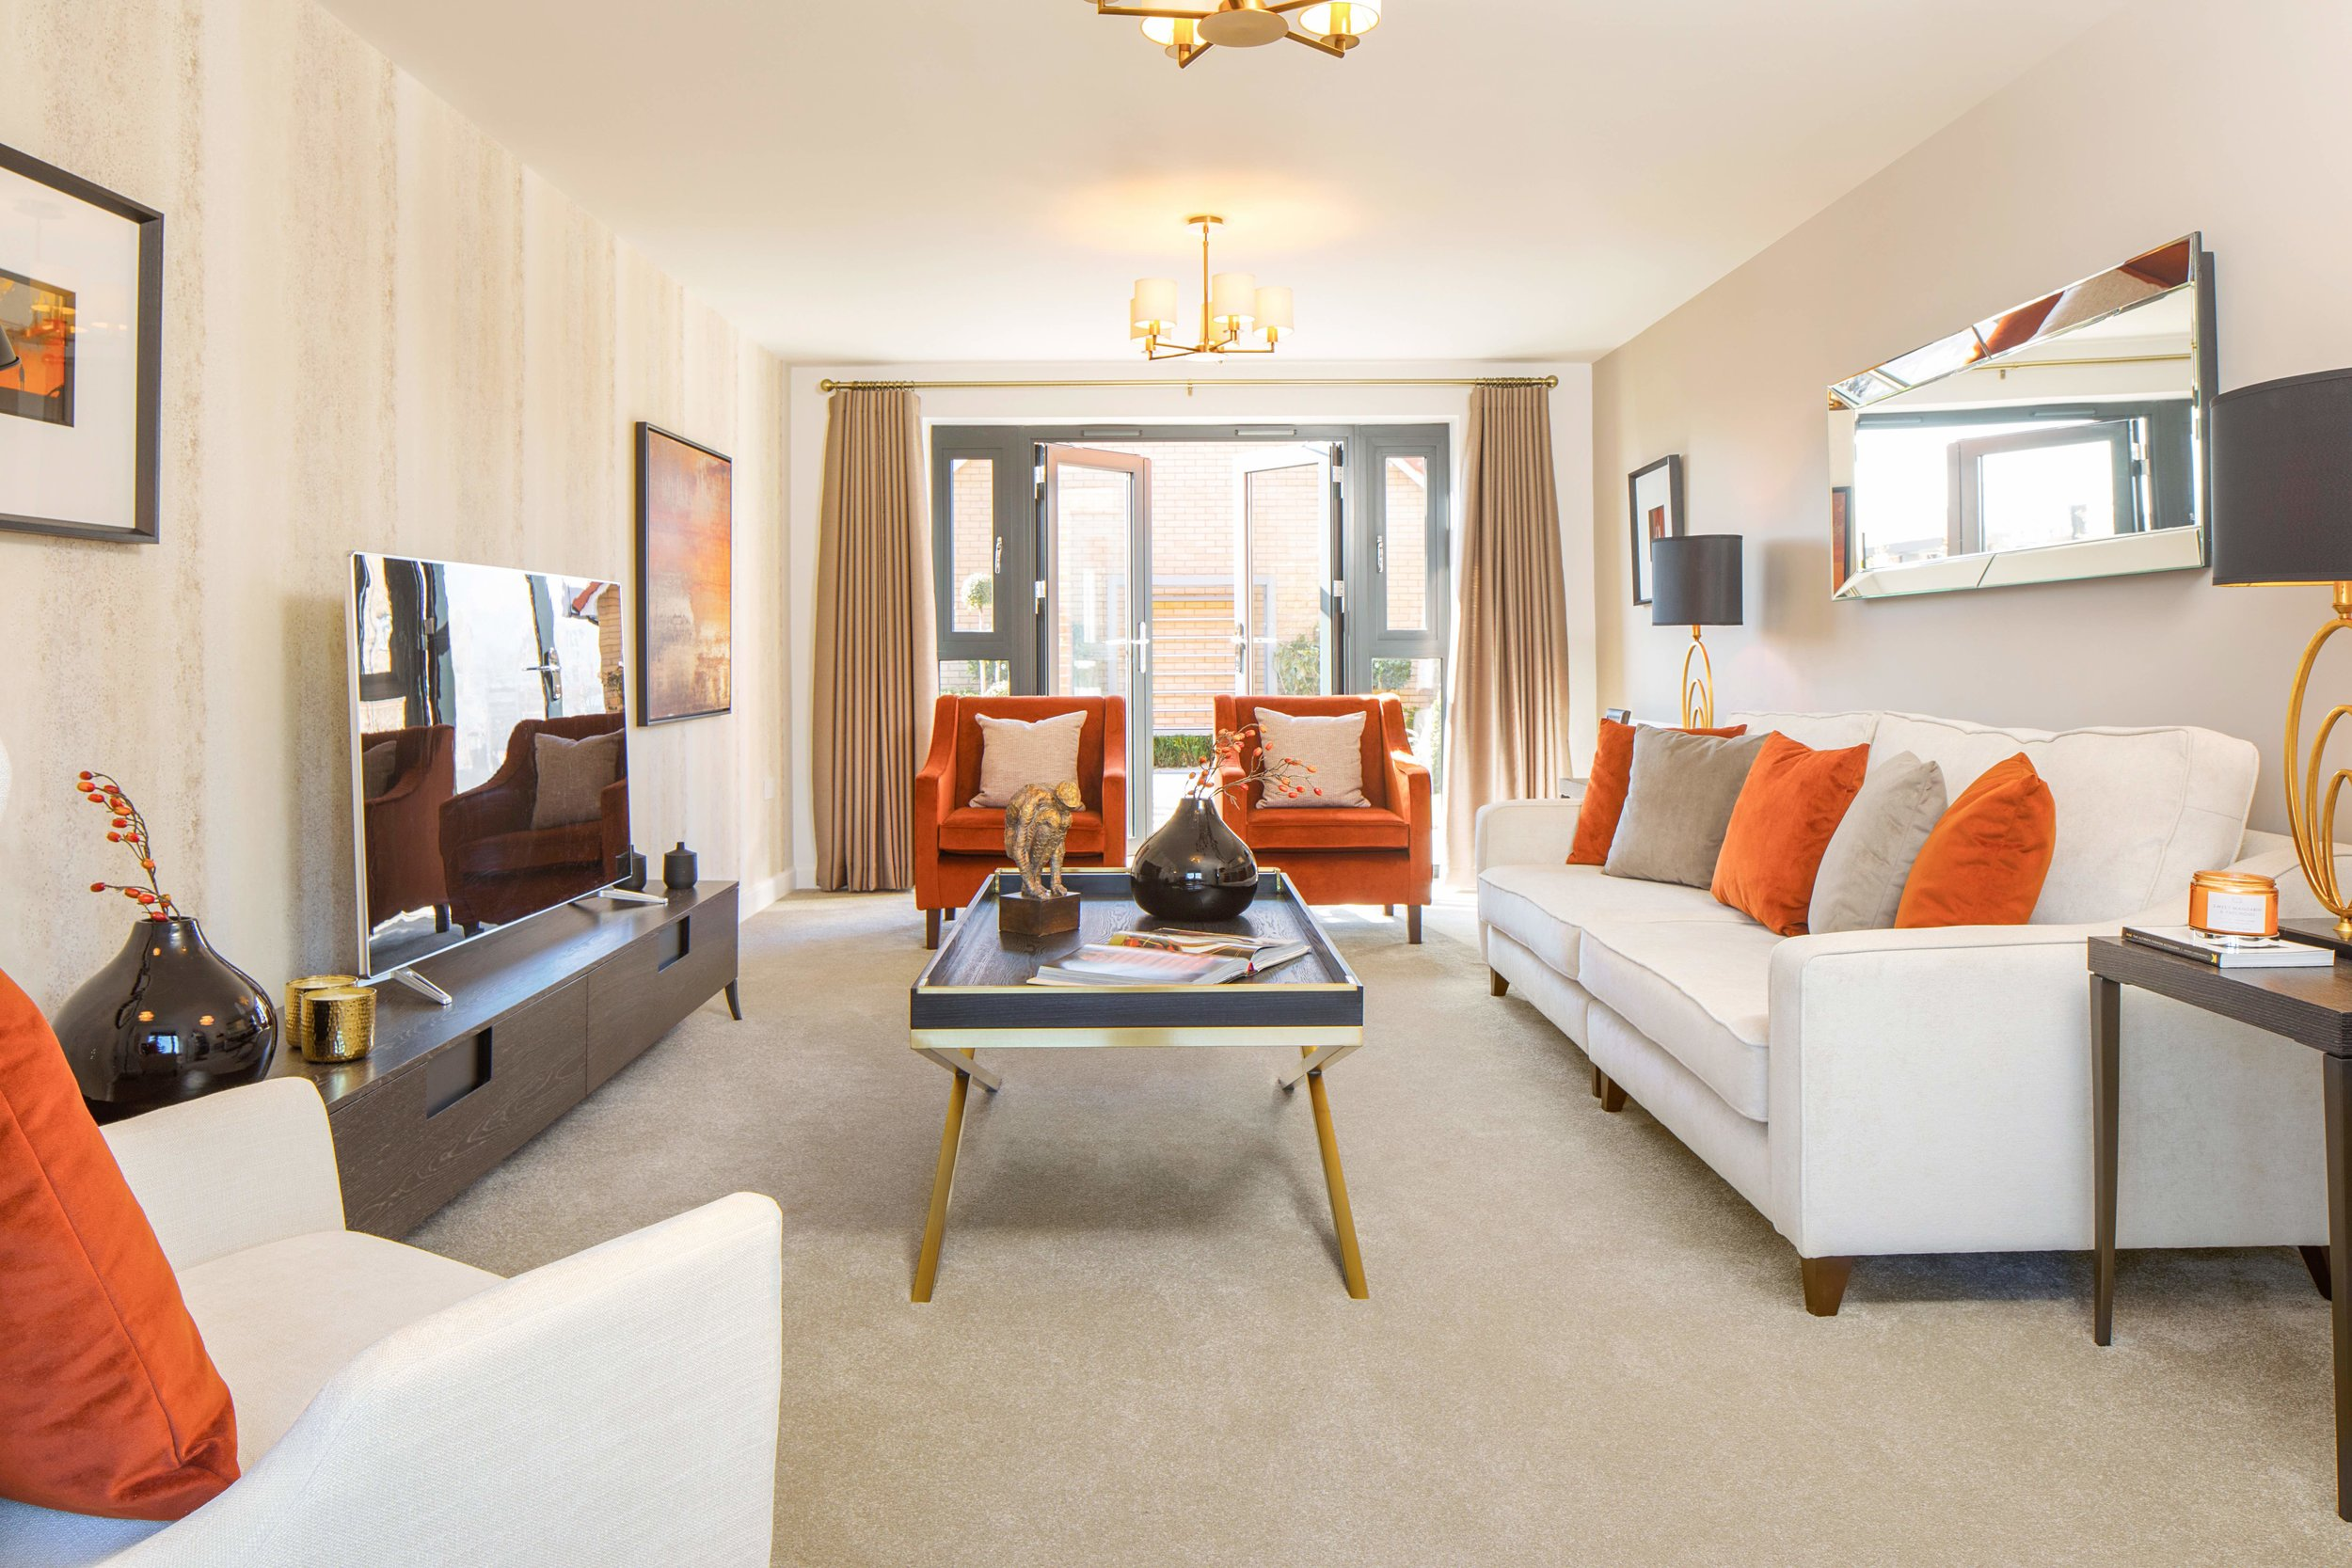 Barratt Homes interior 1.jpg